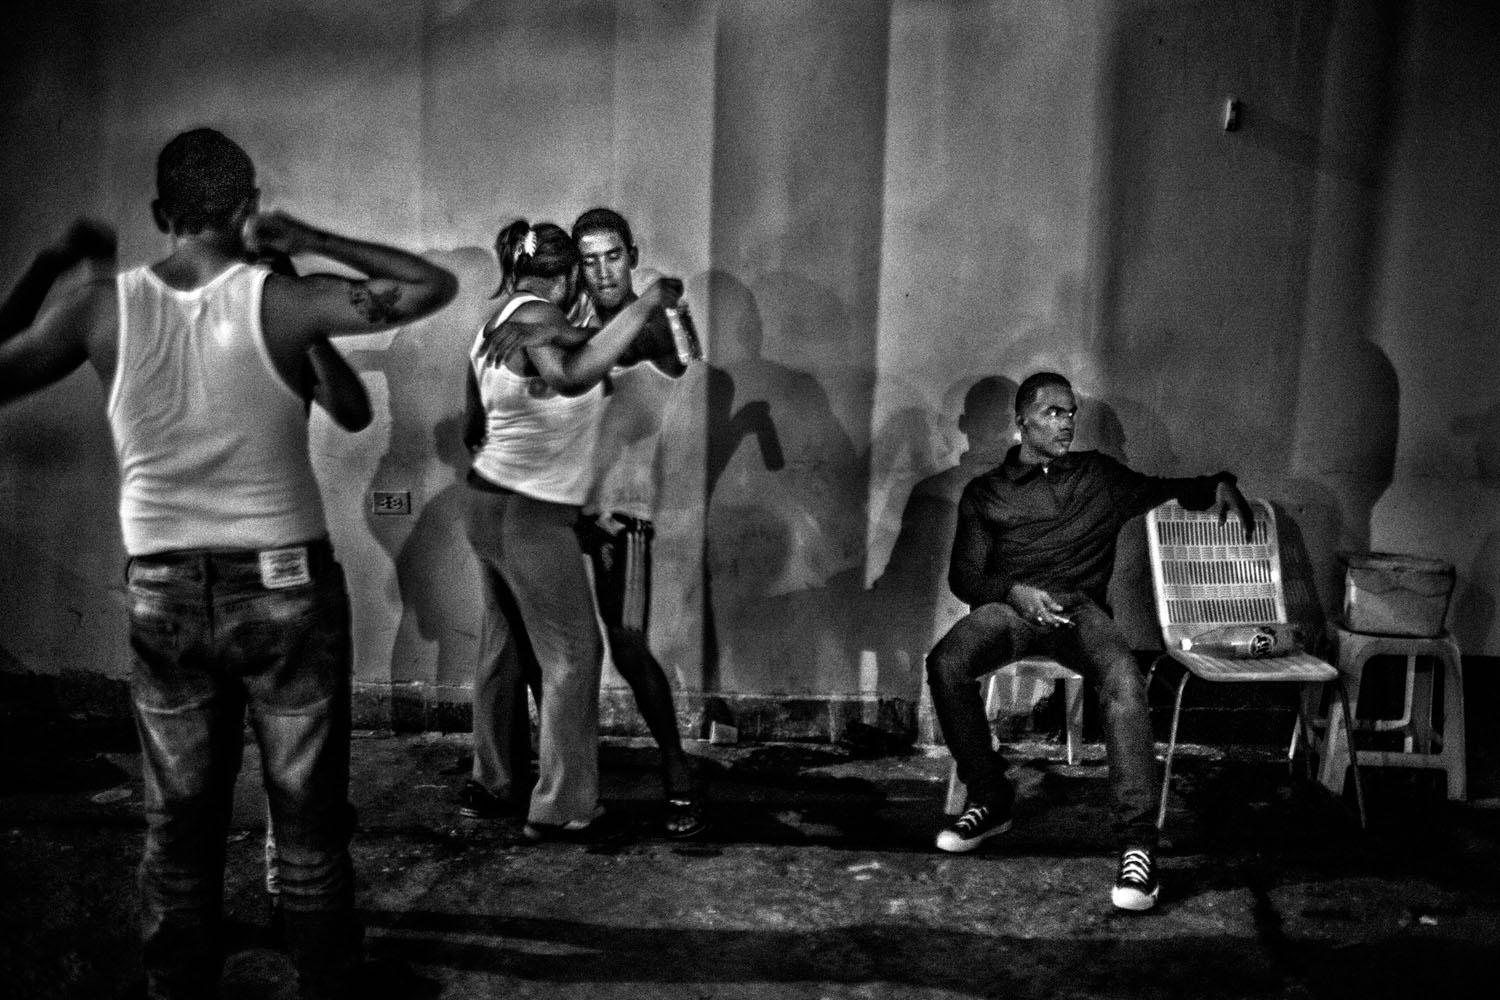 Inmates dance with girls during a weekend visit. In the background, an armed member of the carro keeps watch.